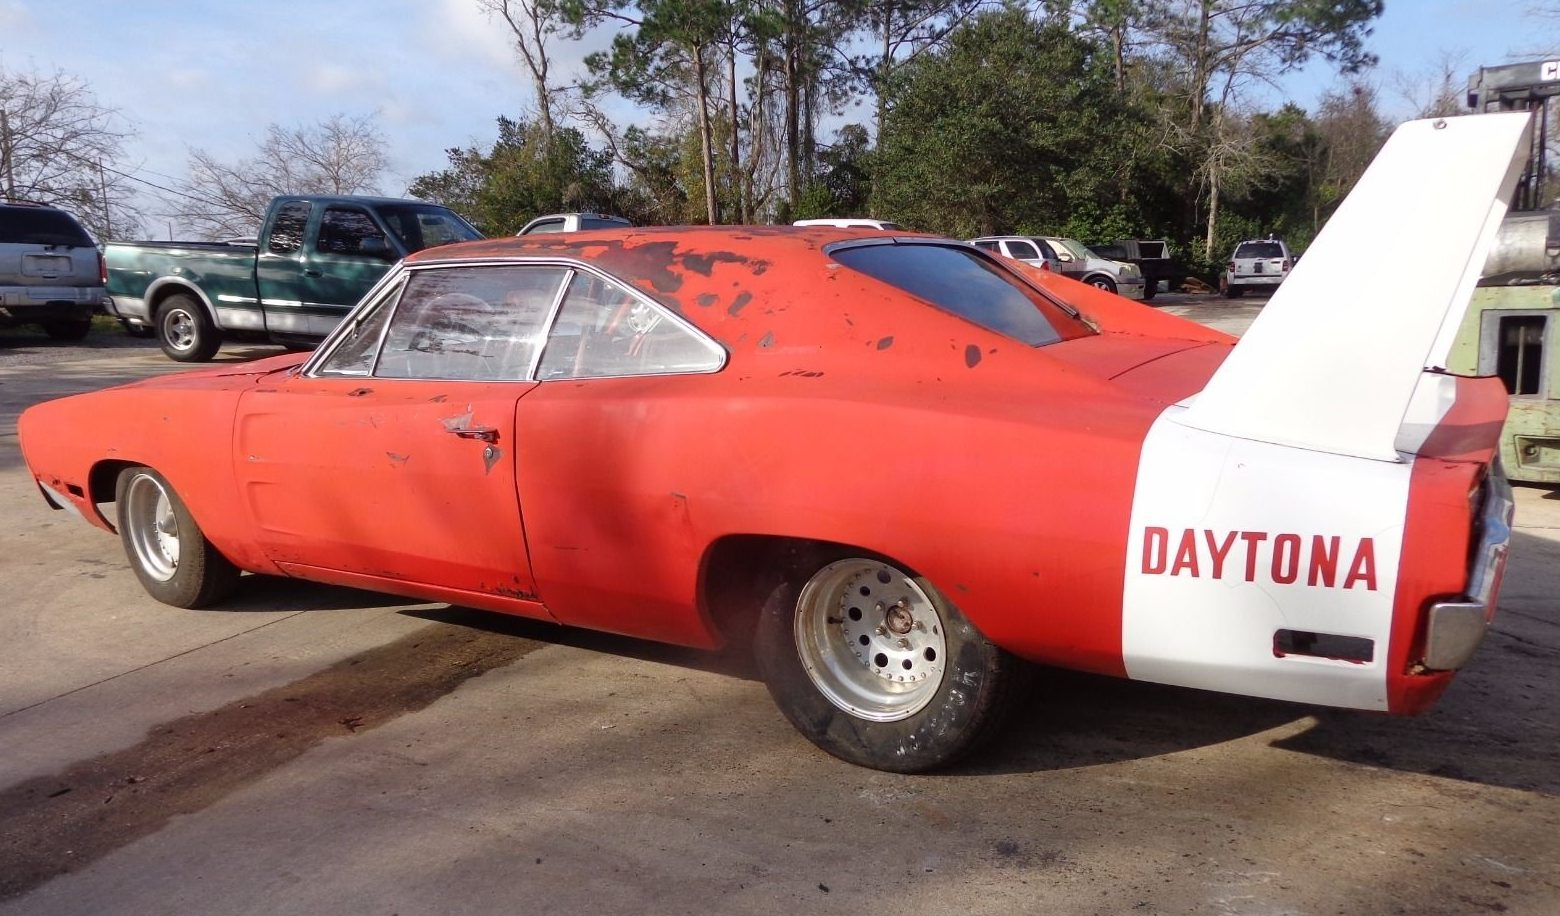 1973 dodge charger daytona  Clone Racer: 1973 Dodge Charger